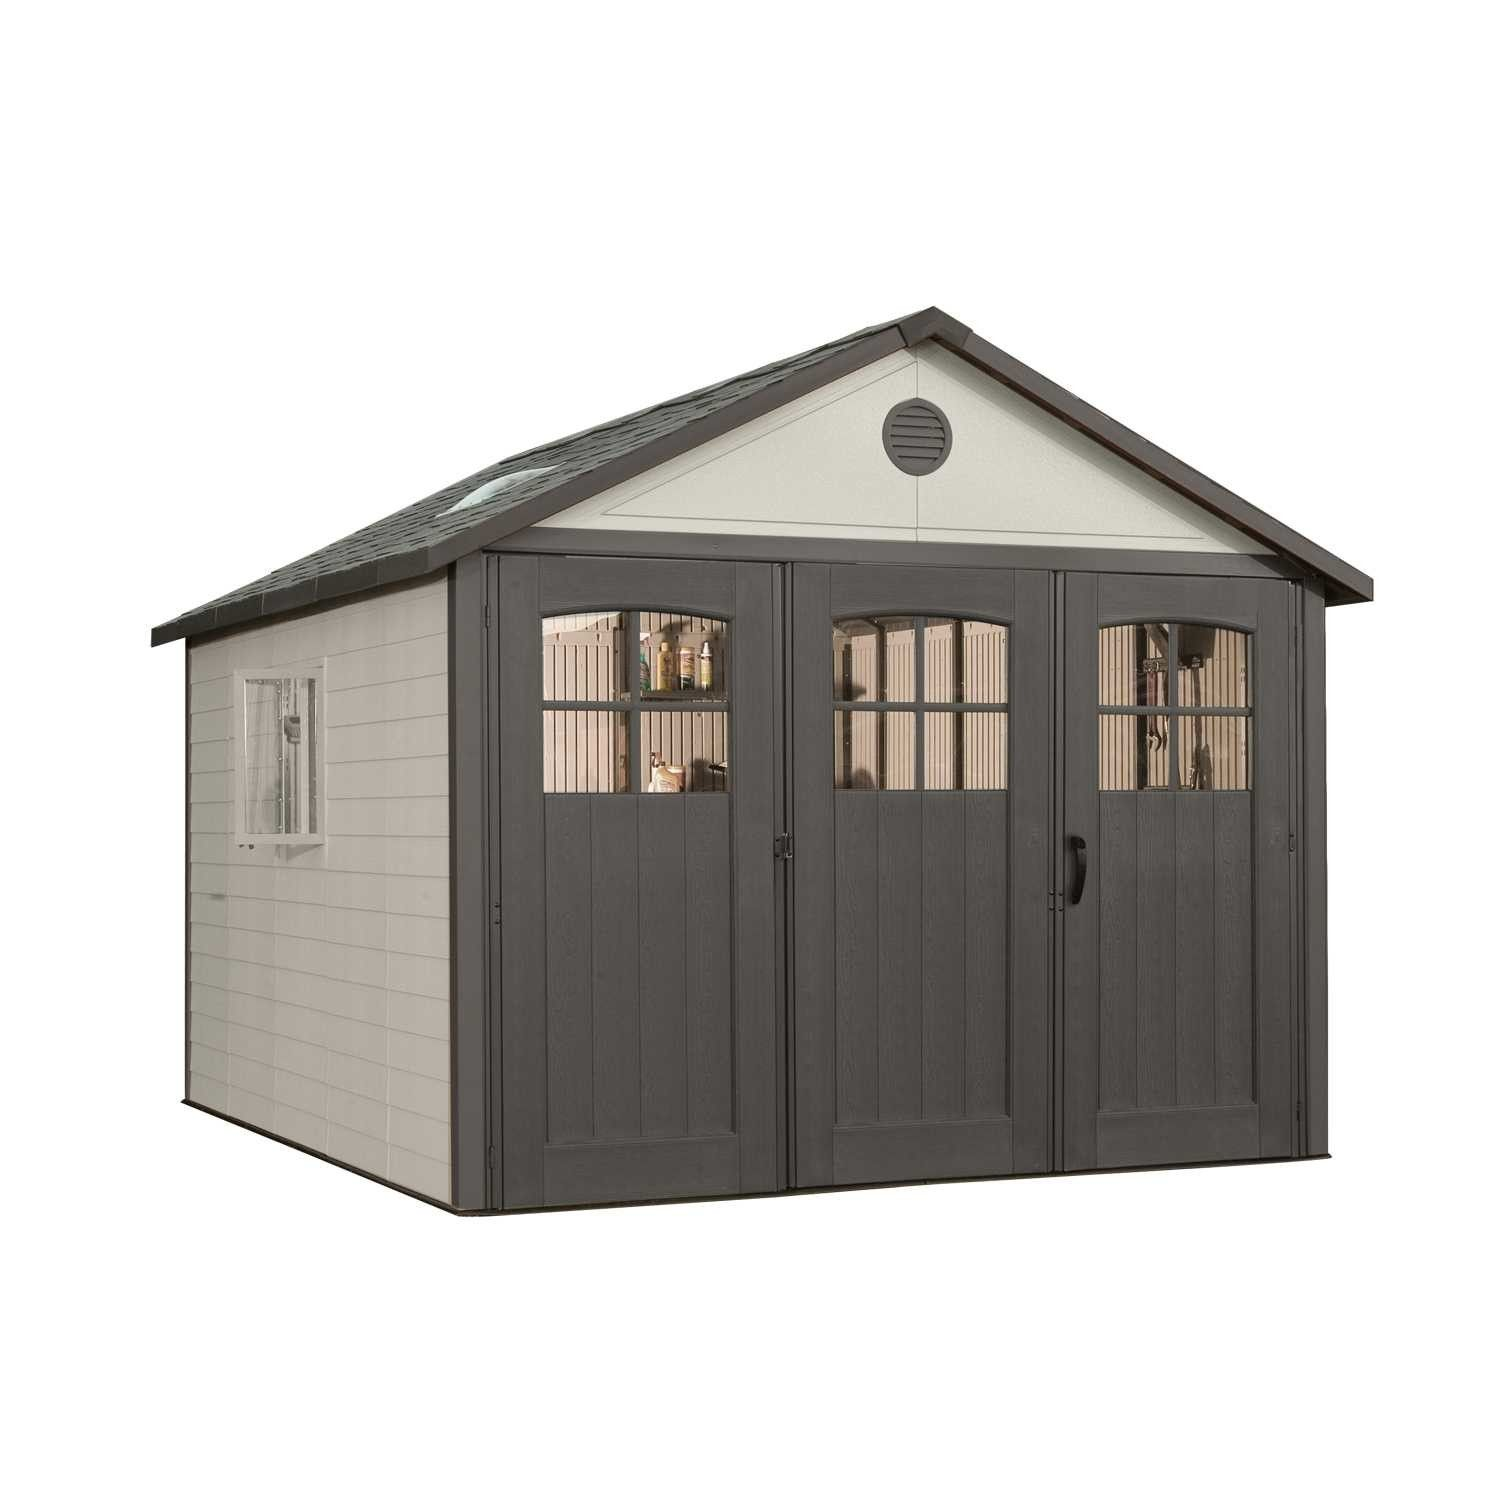 11 ft W x 11 ft D Plastic Storage Shed